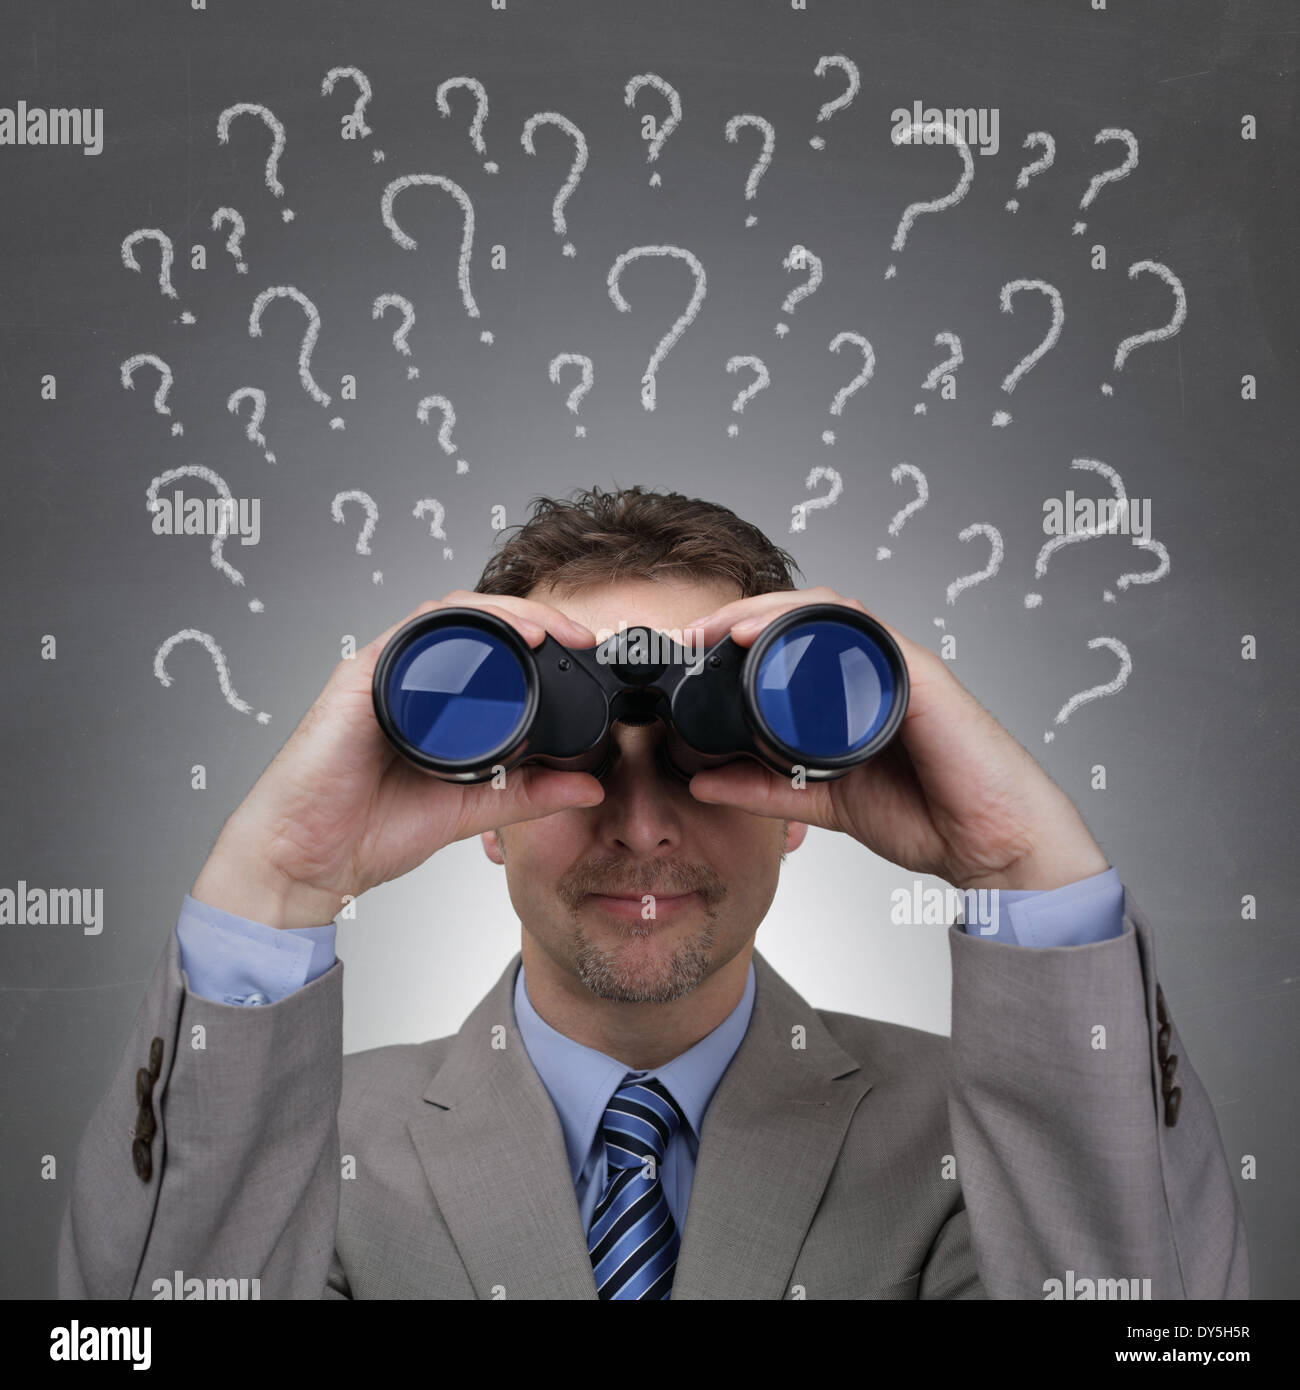 Business questions - Stock Image